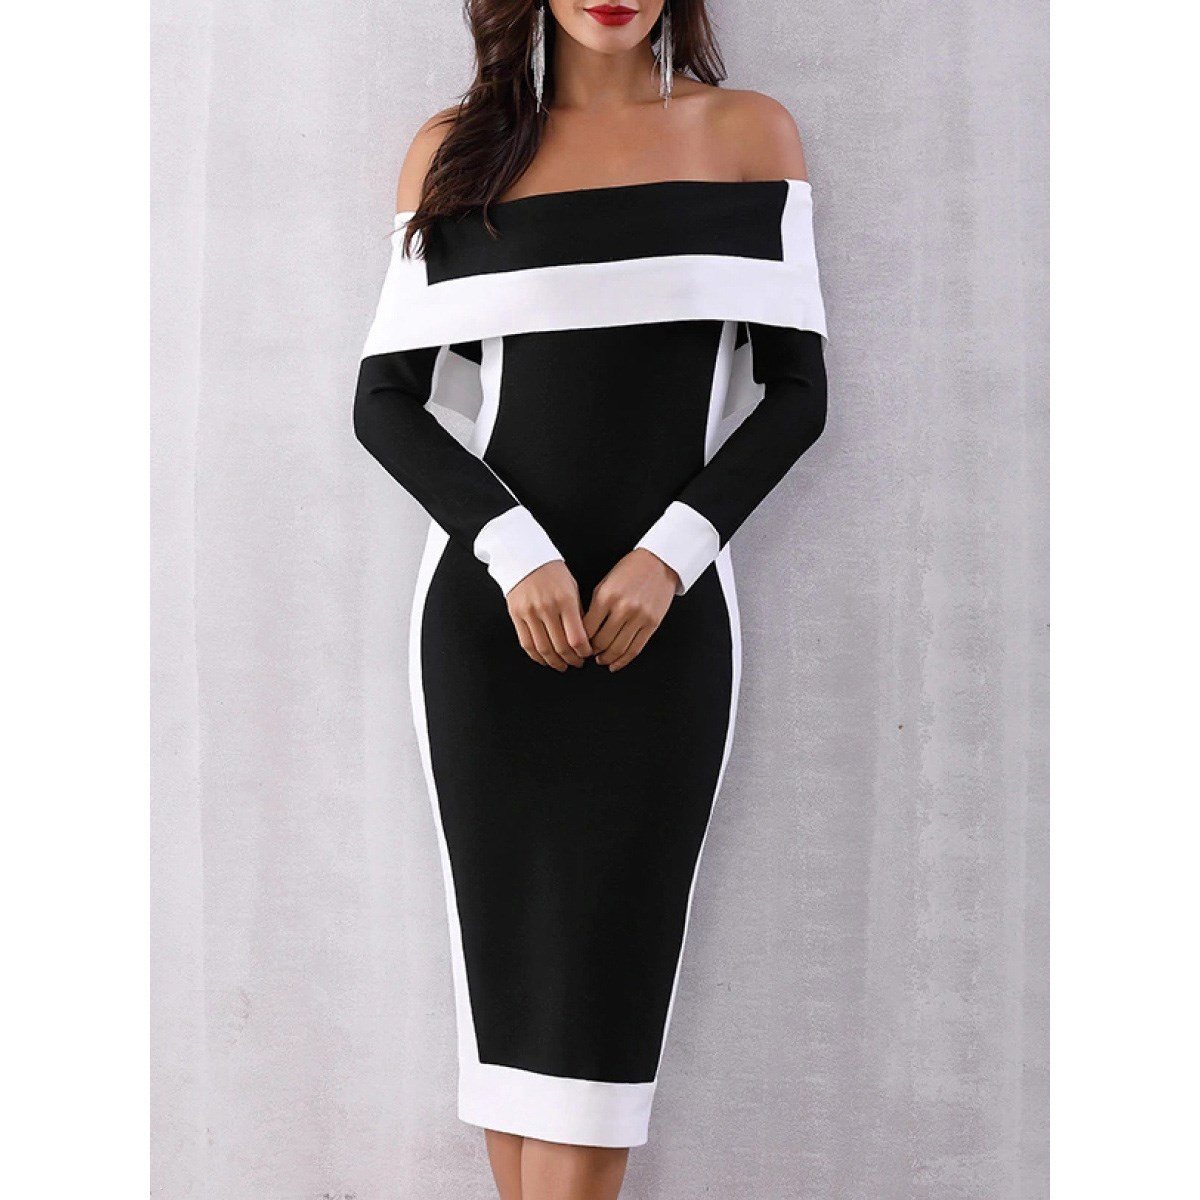 <font><b>Sexy</b></font> Party <font><b>Dress</b></font> Women Black Backless Bodycon <font><b>Dress</b></font> Women Plus Size 5Xl <font><b>4Xl</b></font> Red Long Sleeve Midi <font><b>Dress</b></font> image